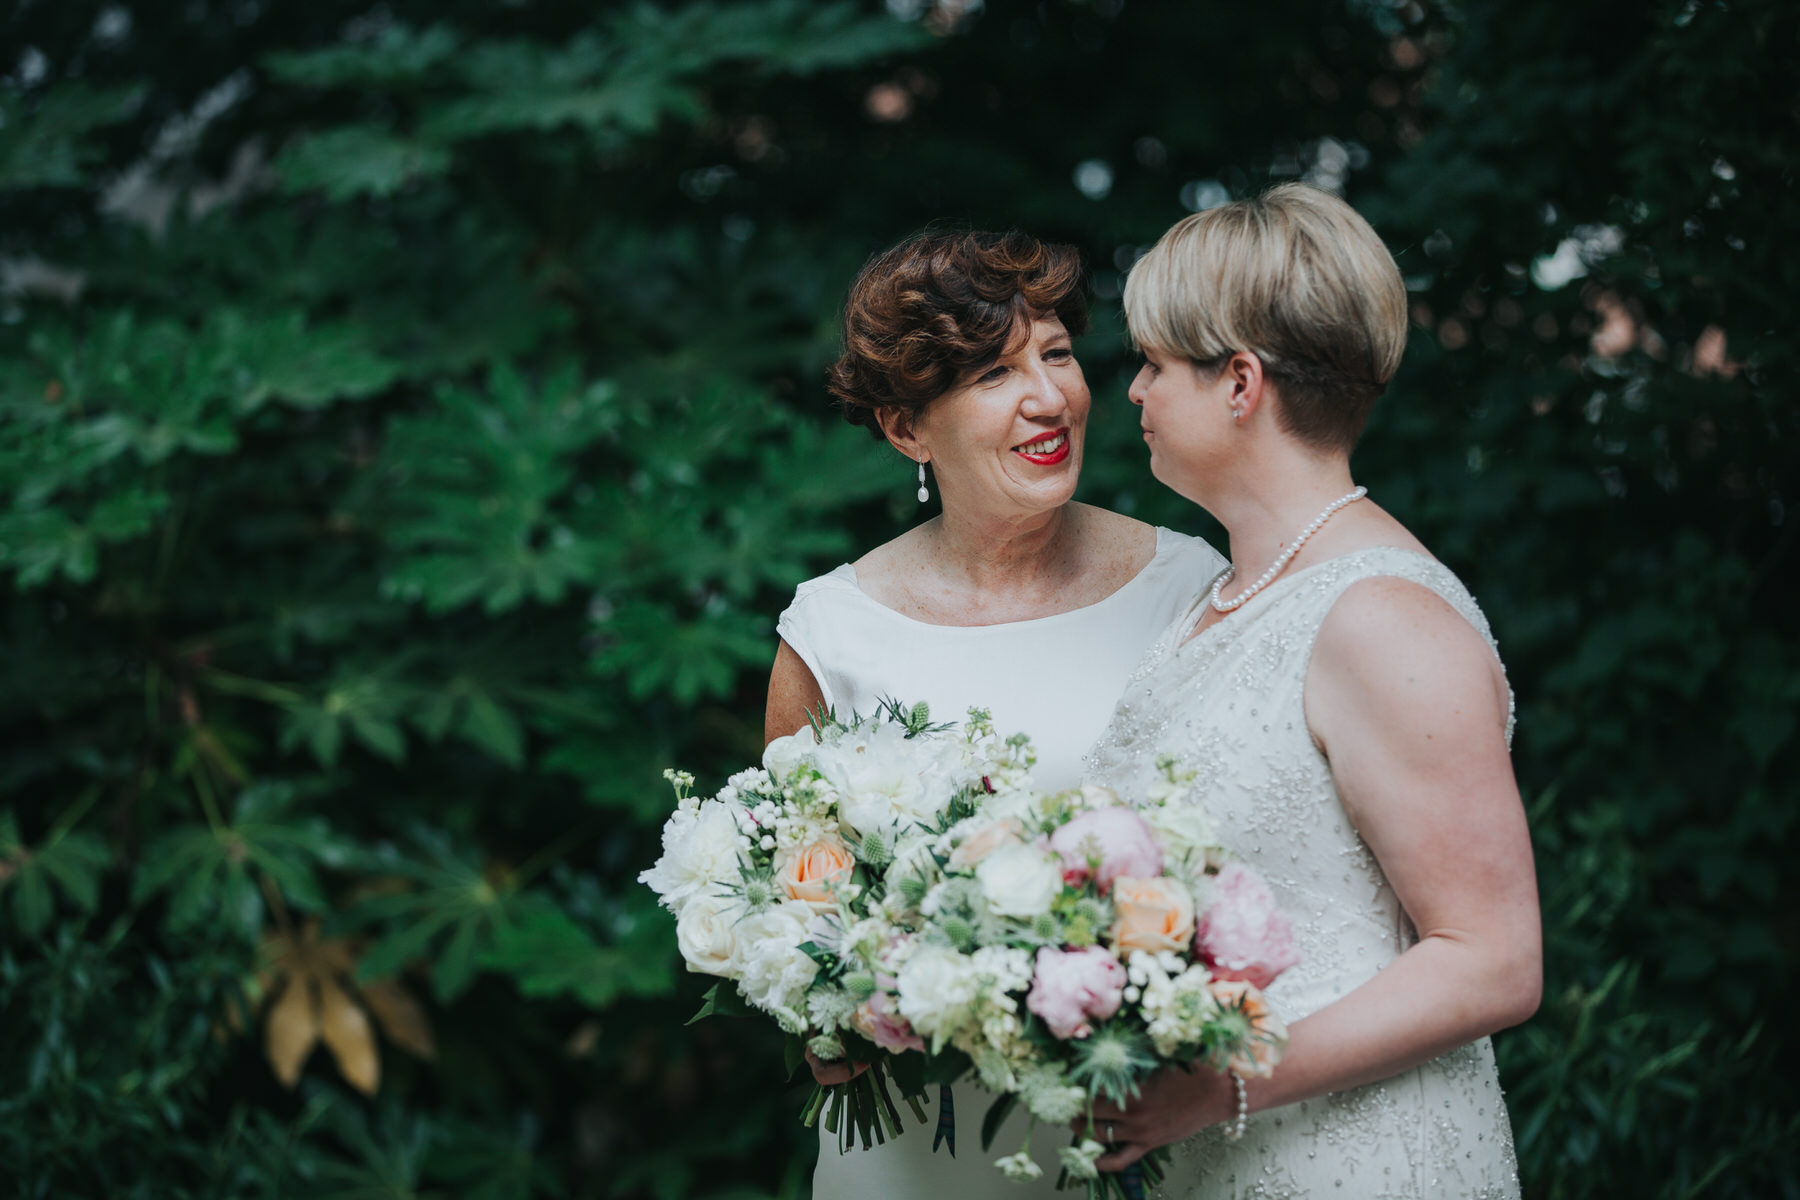 165 two brides looking lovingly couple portraits.jpg